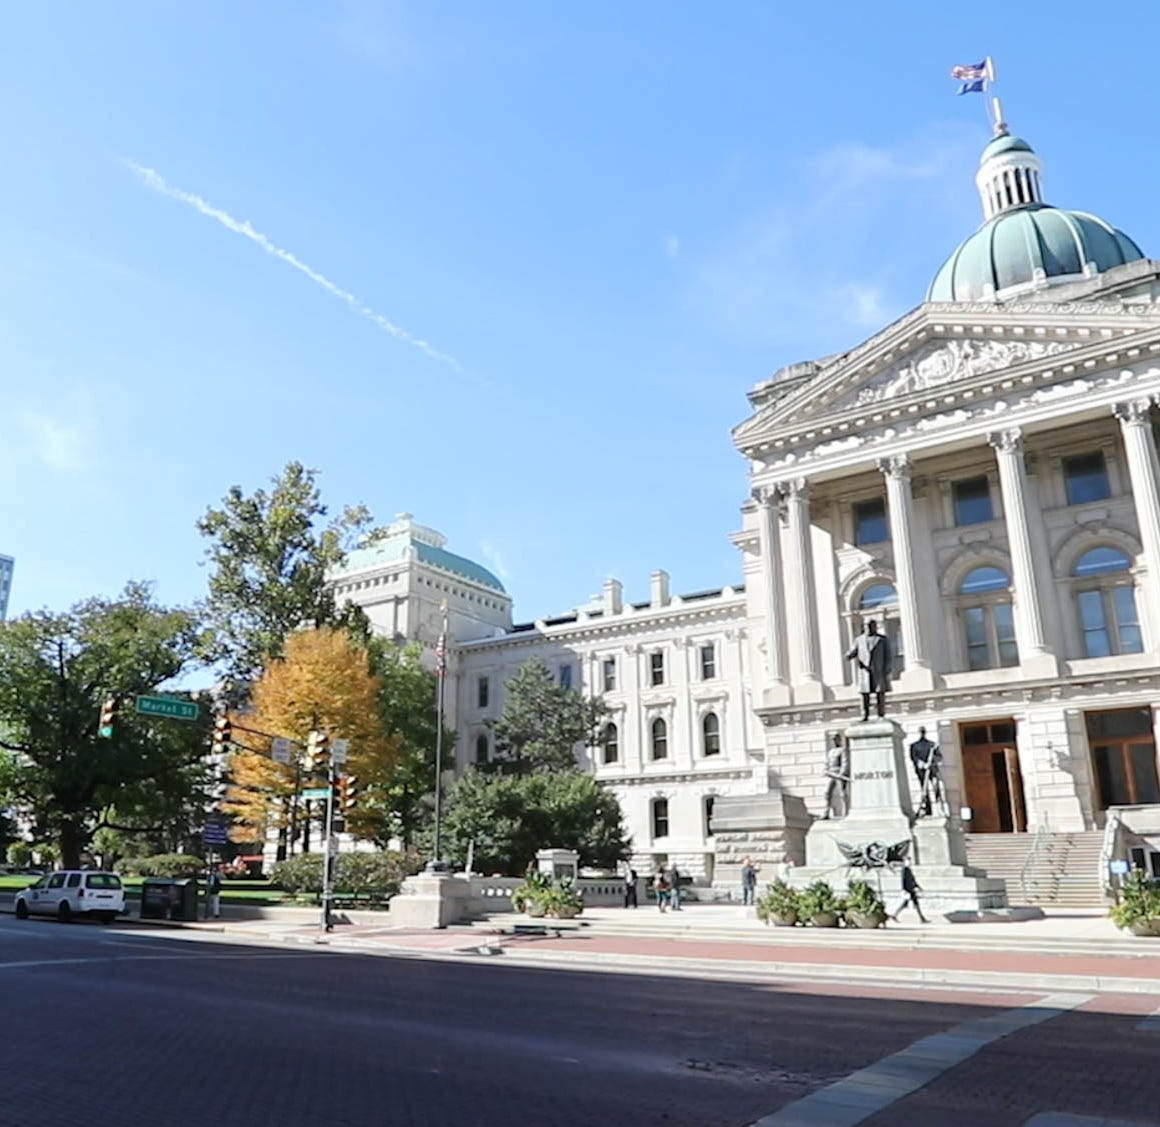 The Indiana Statehouse in Indianapolis Ind. on Wednesday, Oct. 24, 2018.